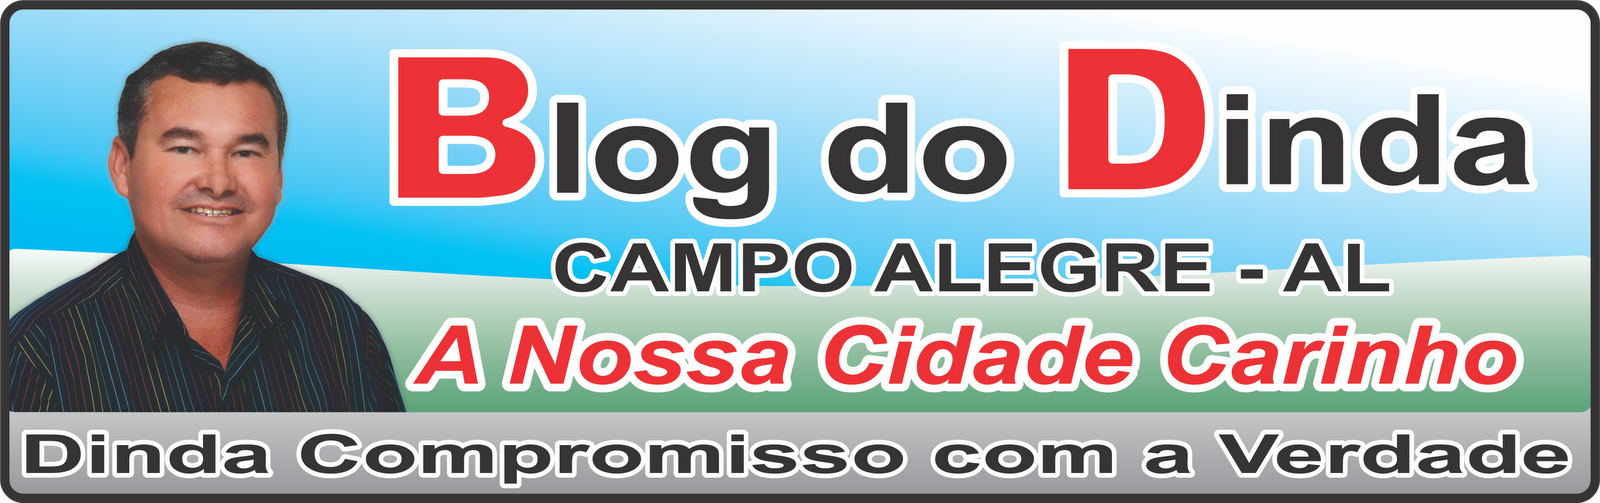 BLOG DO DINDA